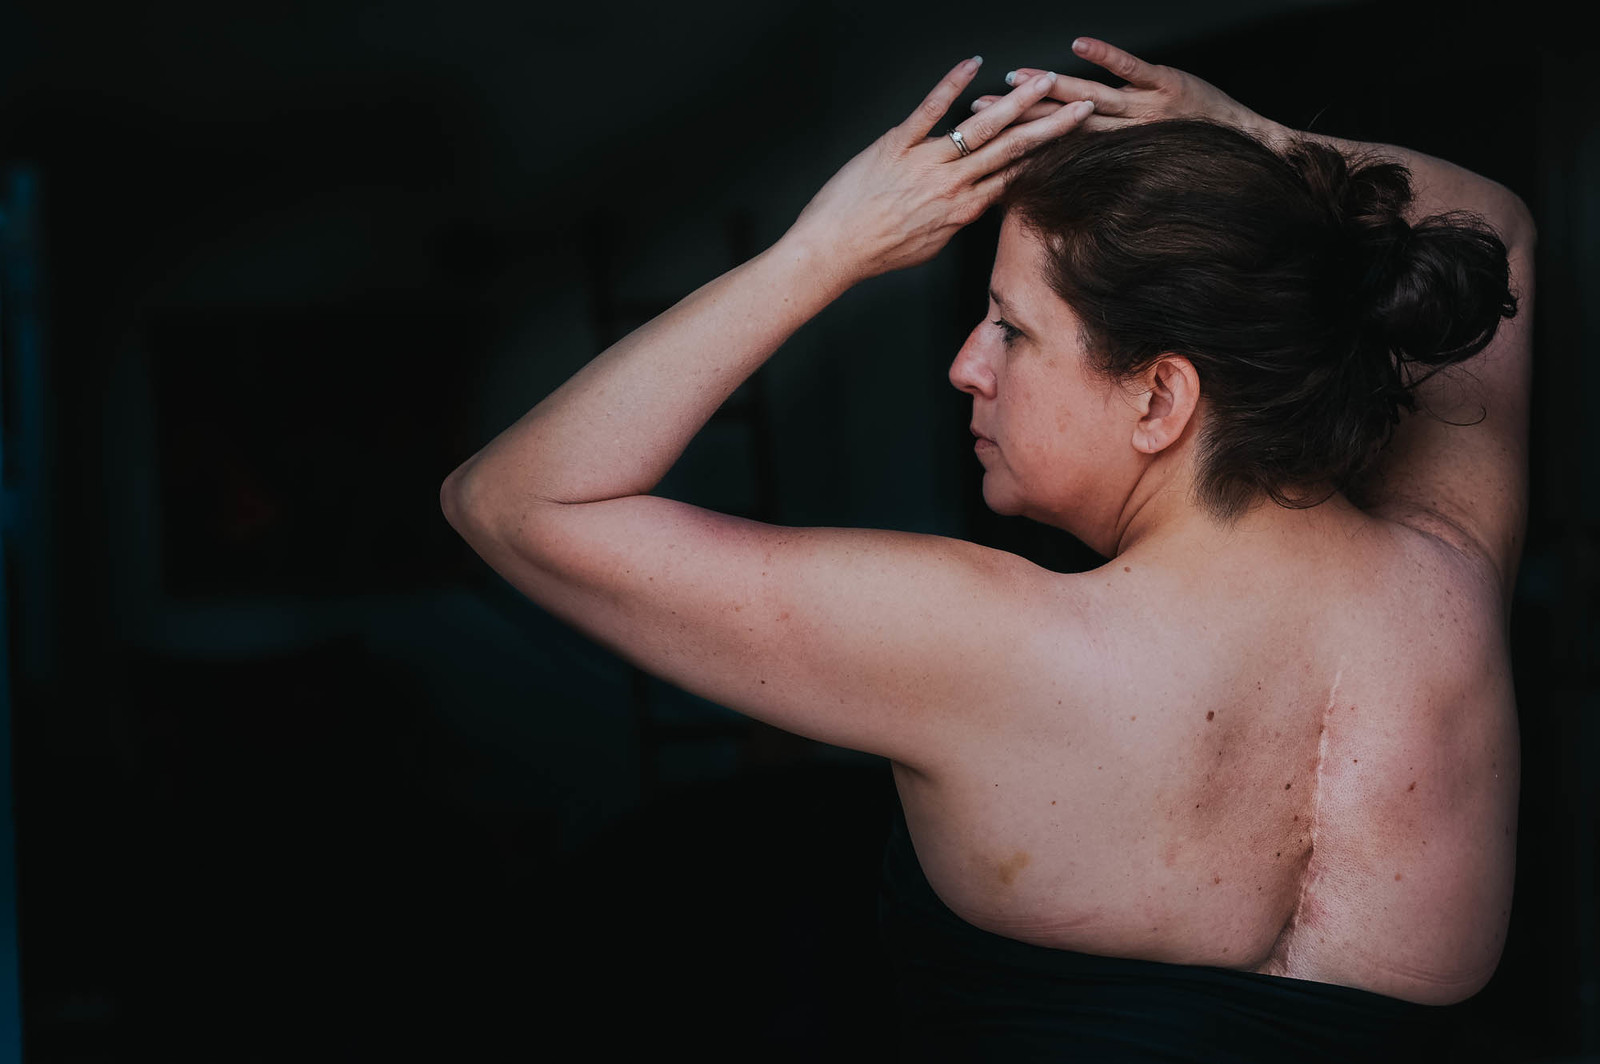 Waist up view of woman with her back to the viewer, arms raised showing scars from spina bifida